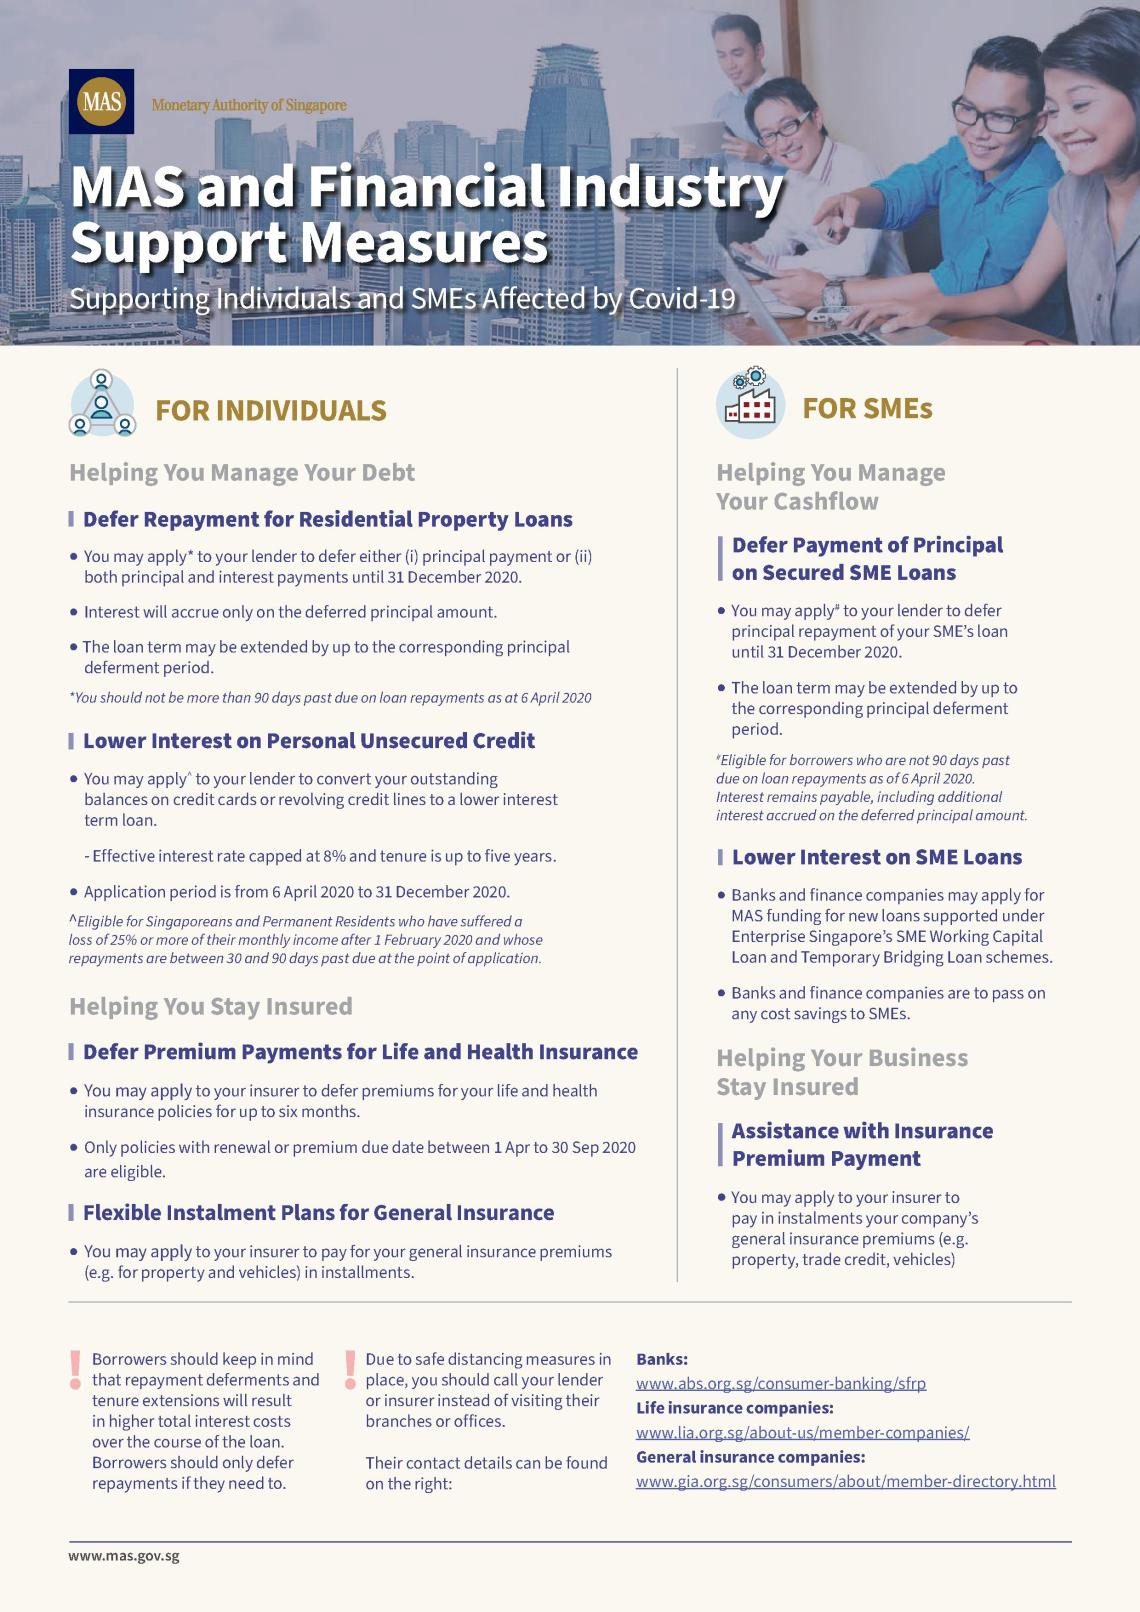 Infographic on MAS and Financial Industry Support Measures